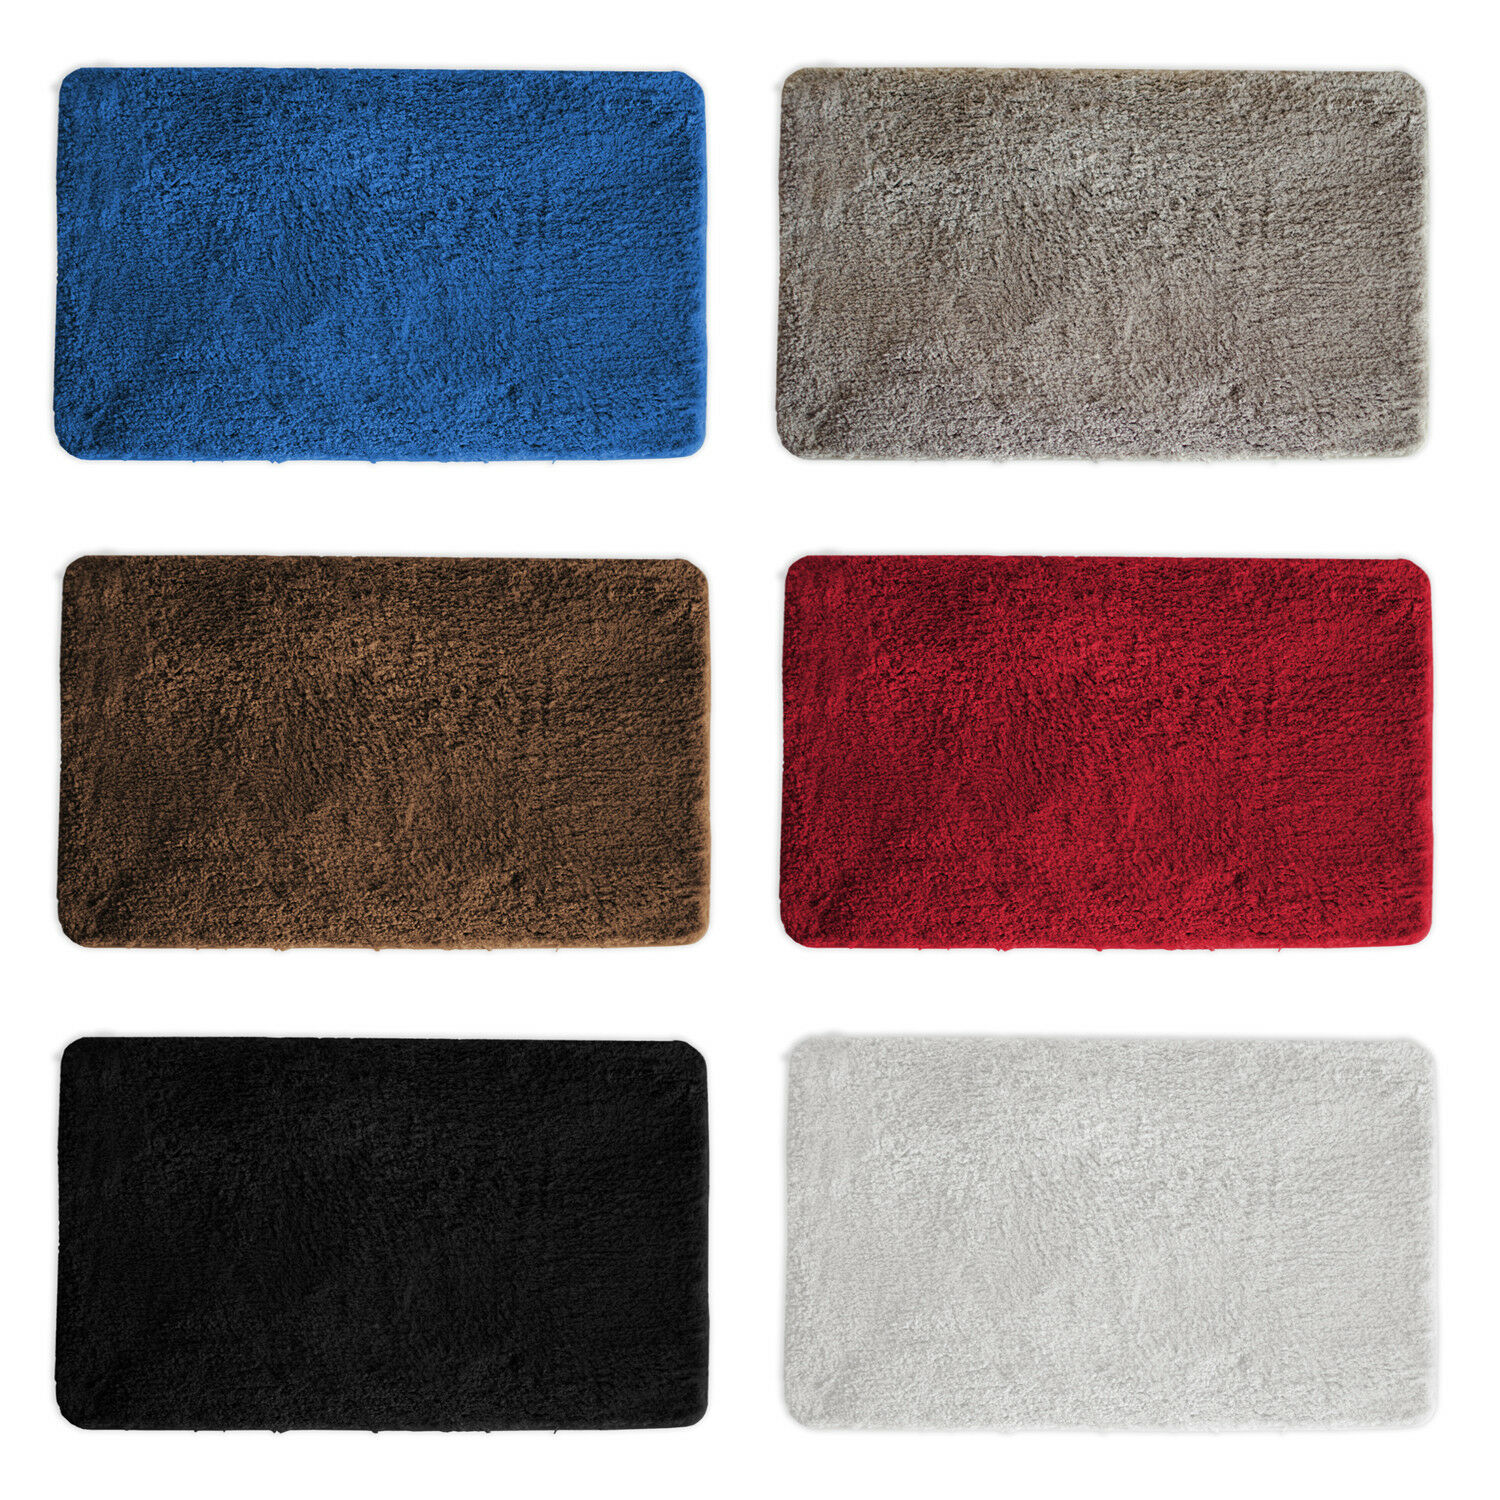 Mainstays Thick Double Soft Bath Mat White For Sale Online Ebay